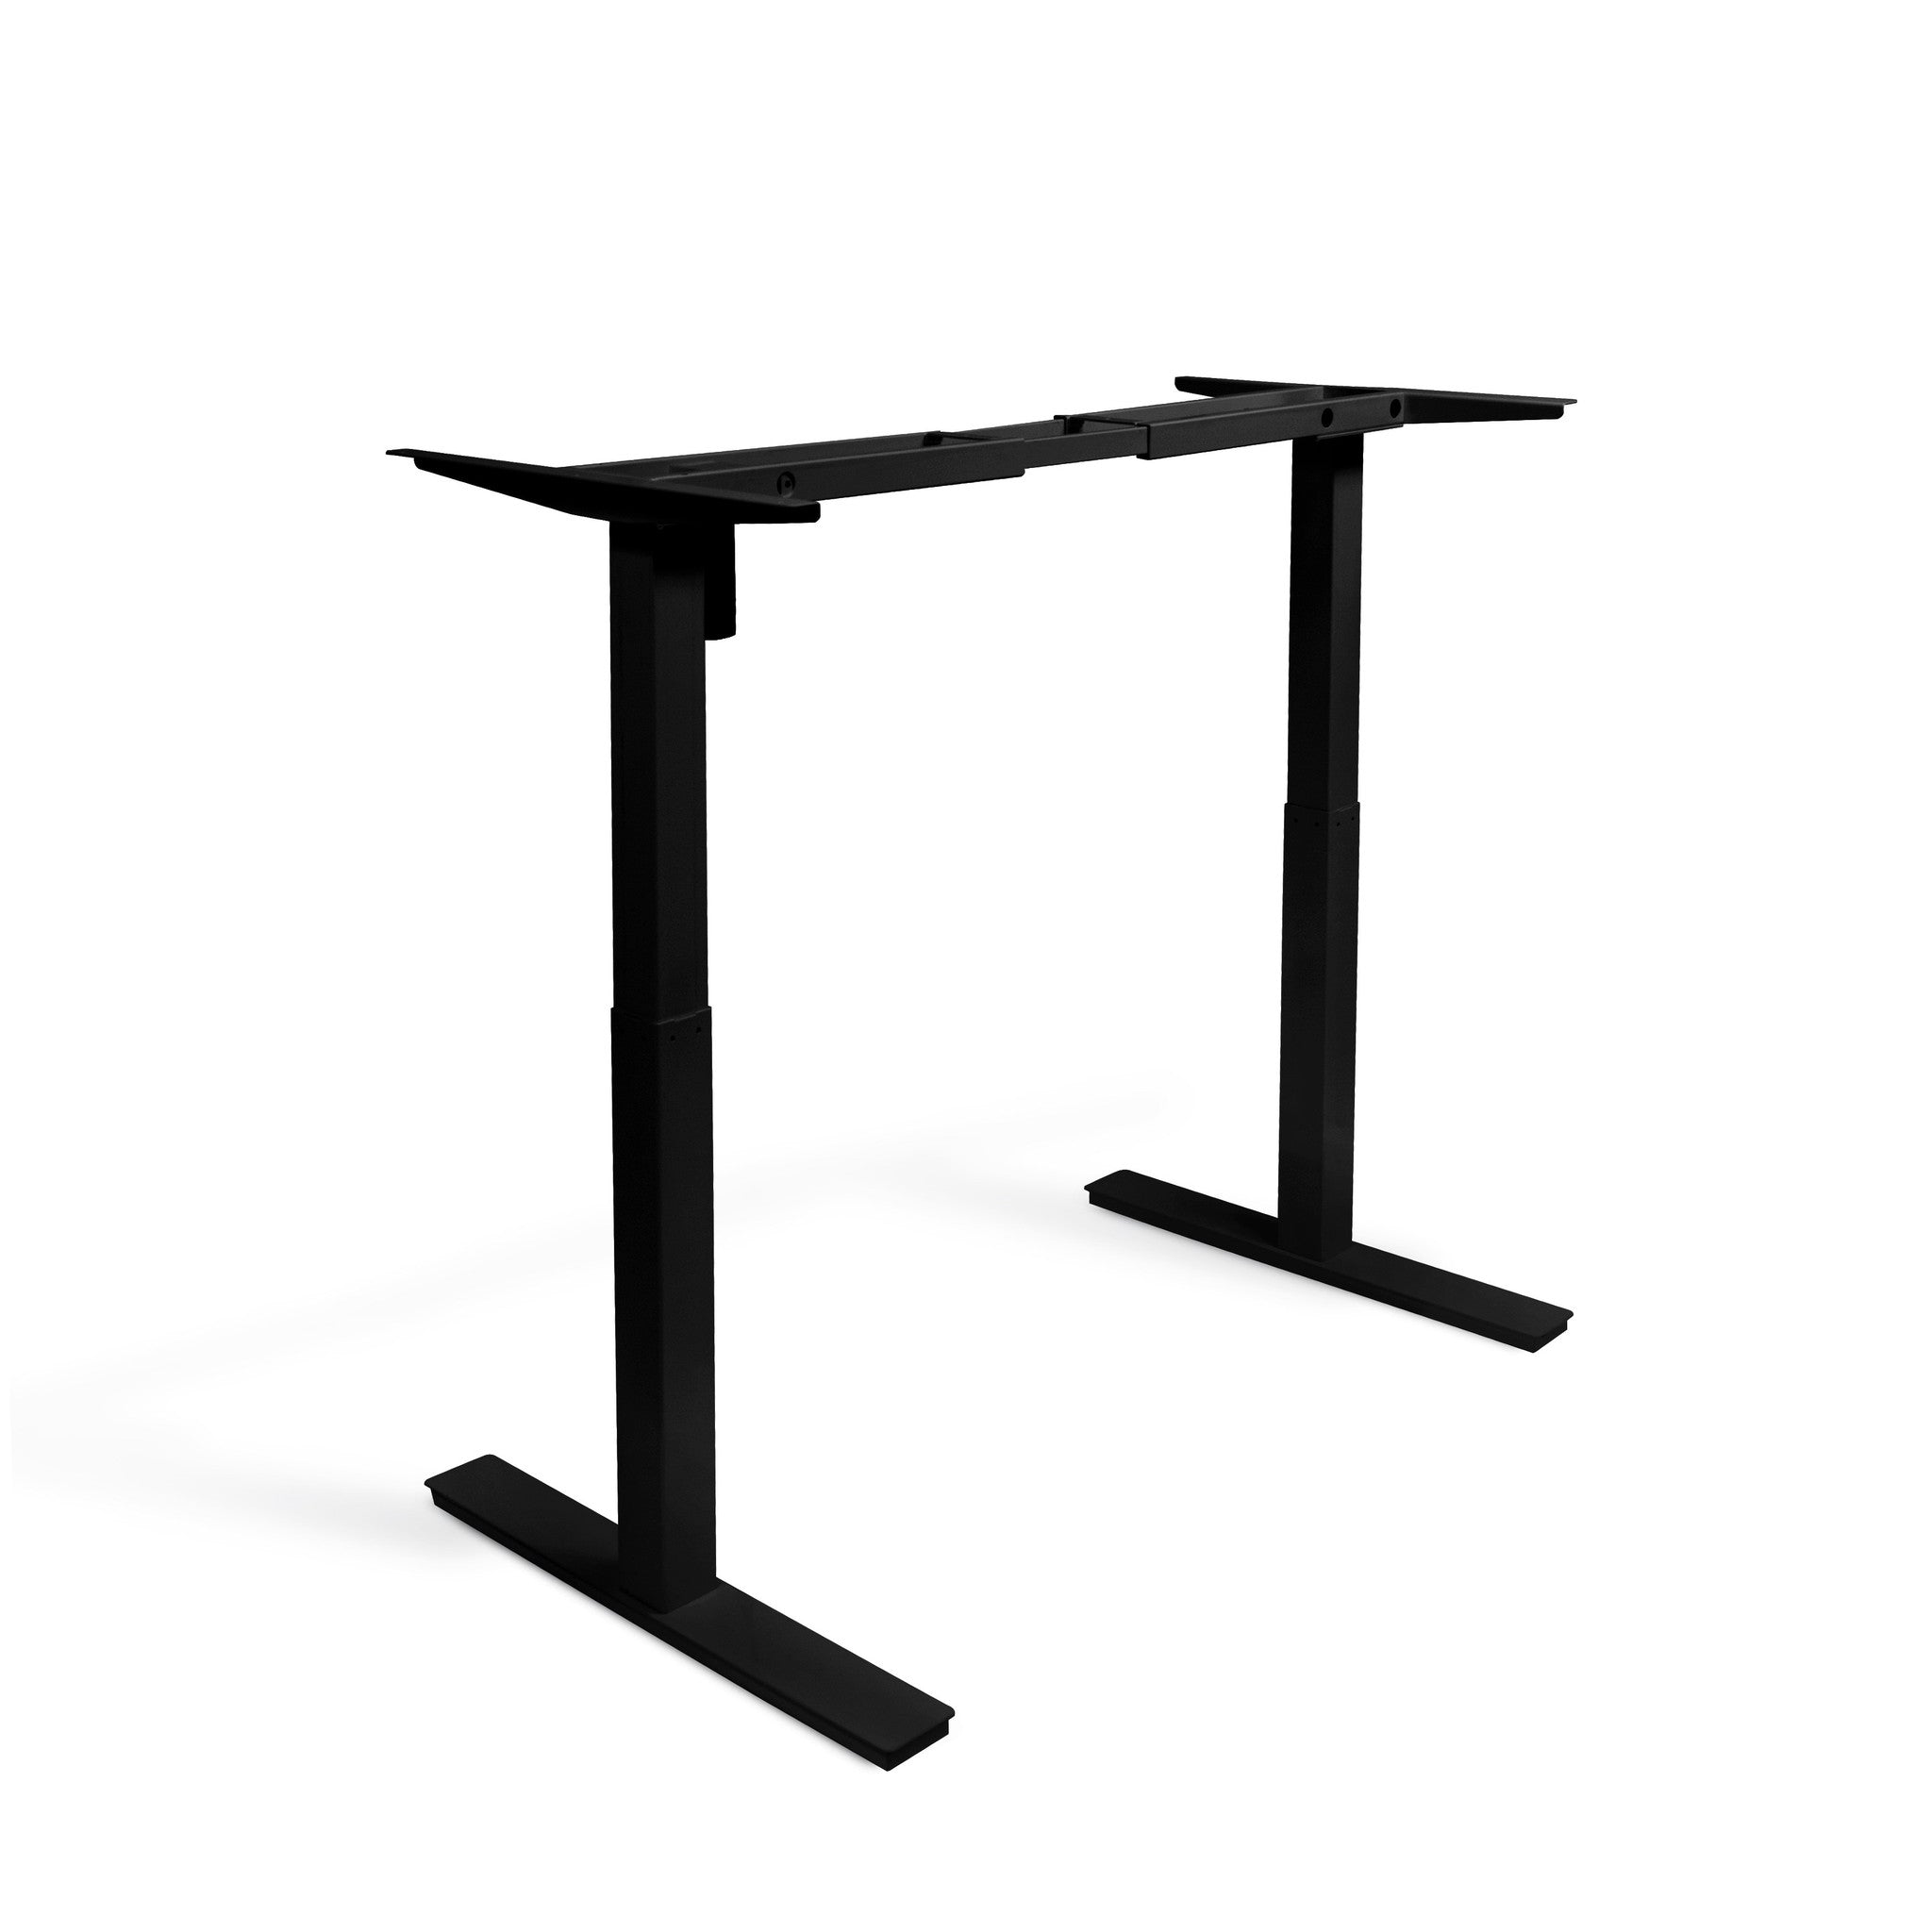 diy included stand not standing sit dual overstock motor smartdesk product home table frame autonomous garden top shipping height adjustable today free desk